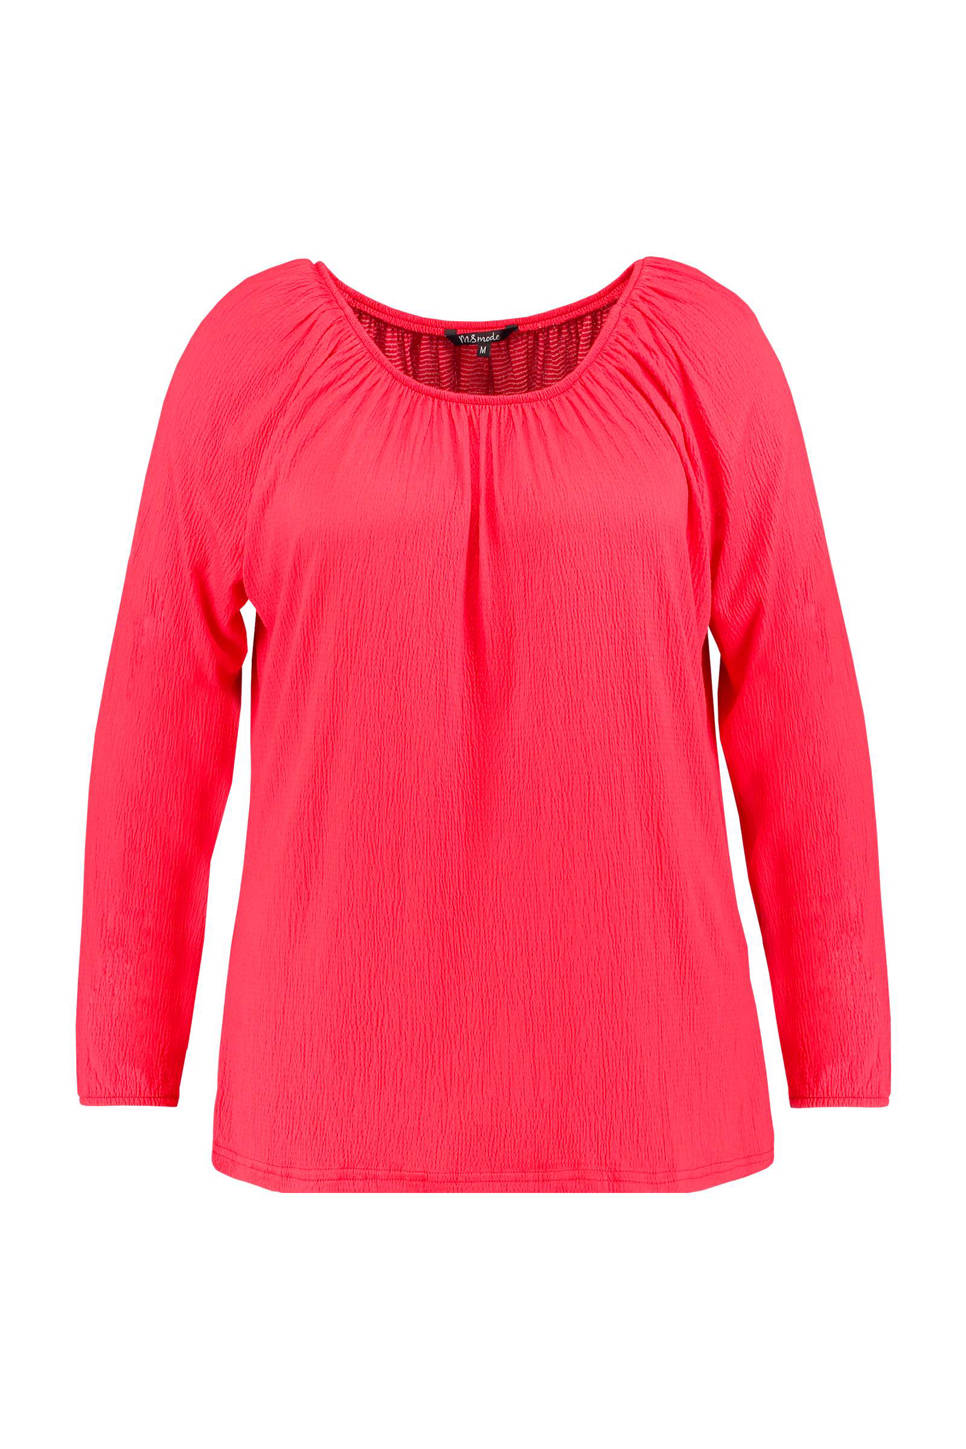 MS Mode top, Rood